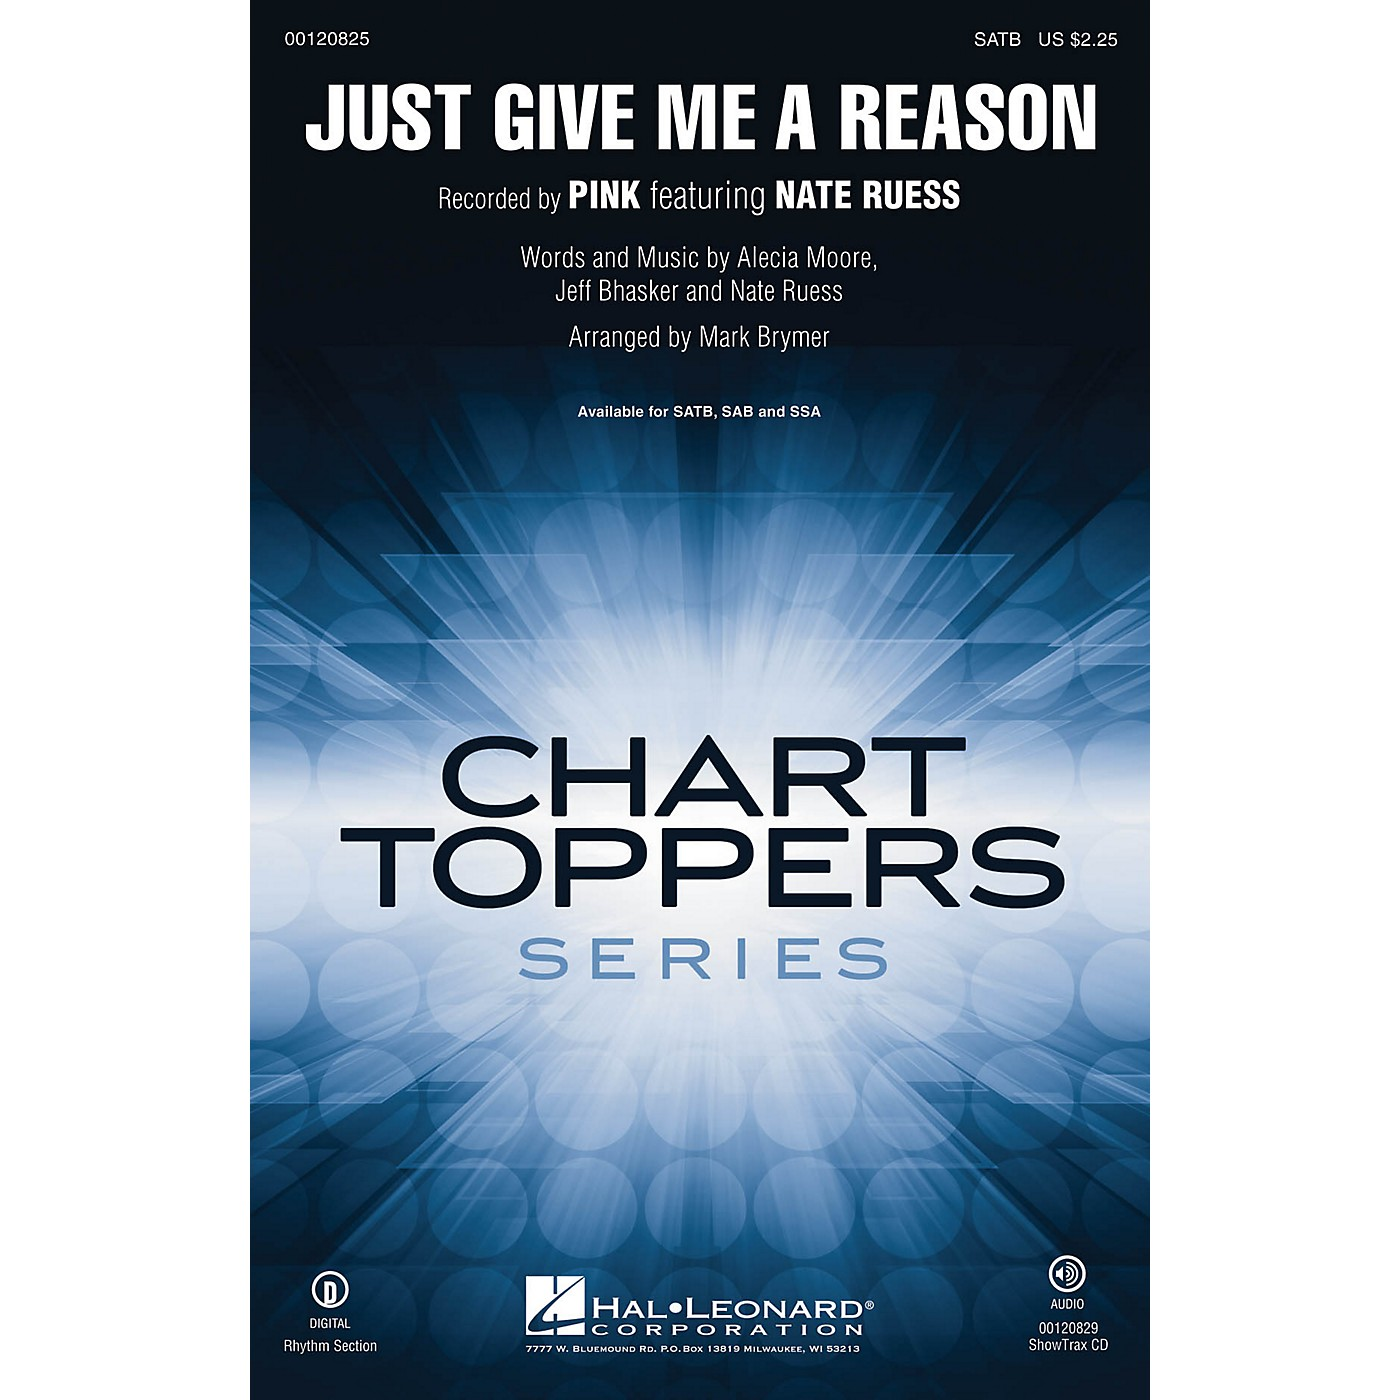 Hal Leonard Just Give Me a Reason ShowTrax CD by Pink featuring Nate Ruess Arranged by Mark Brymer thumbnail